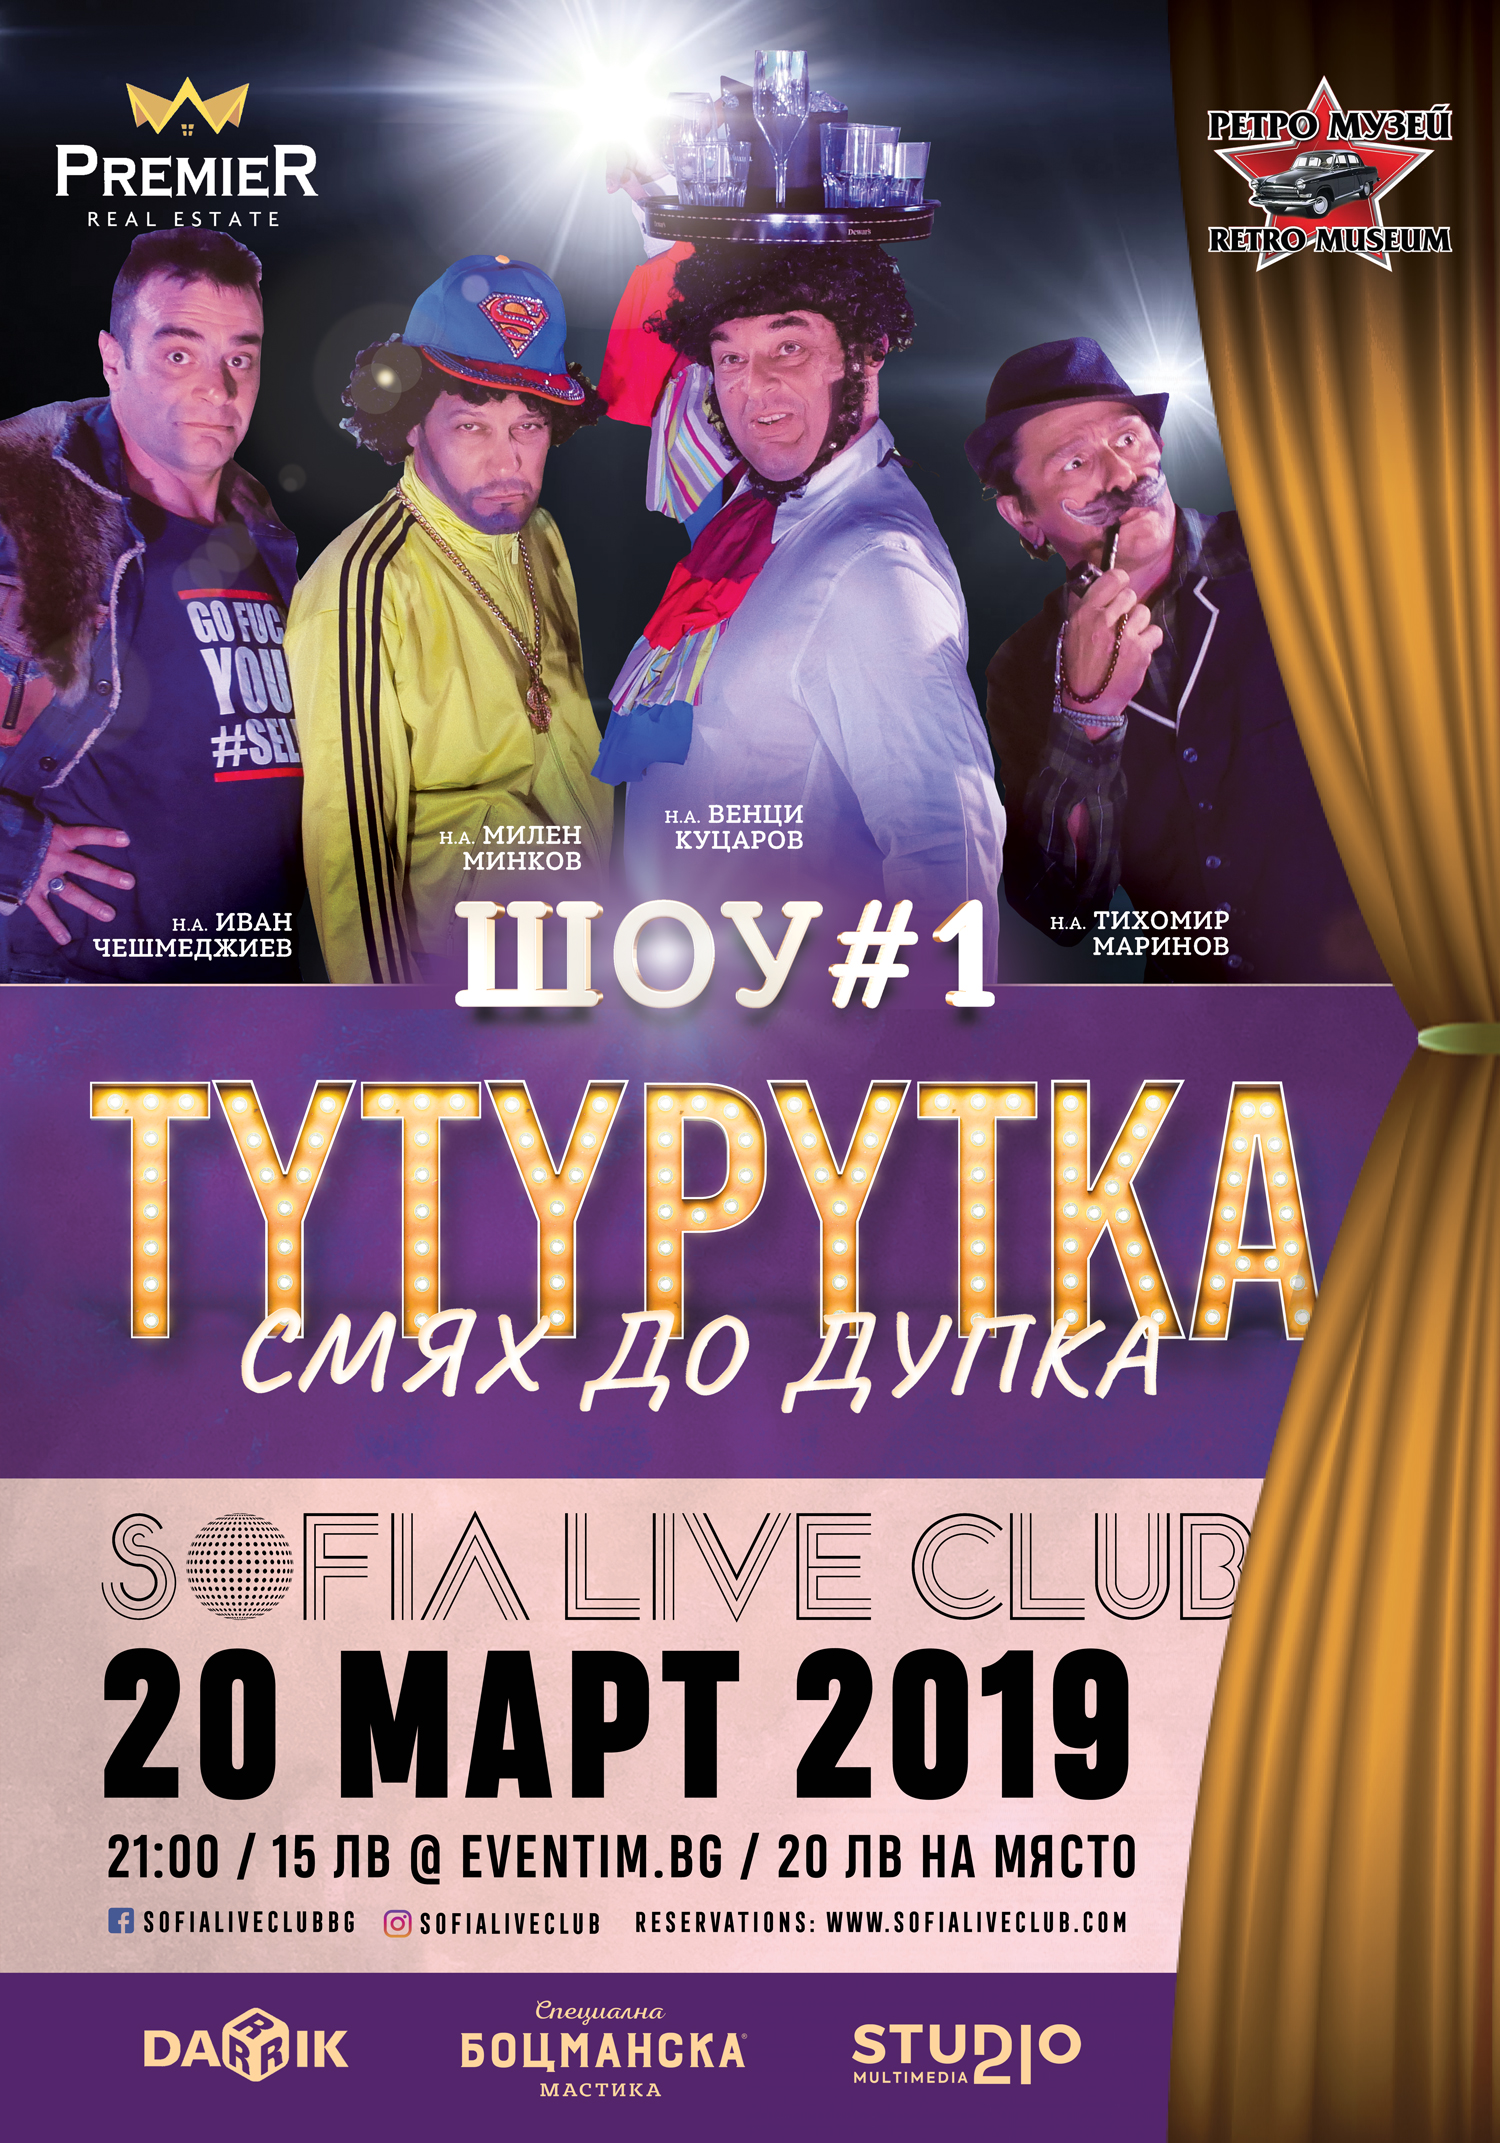 Tuturutka live in Sofia Live Club